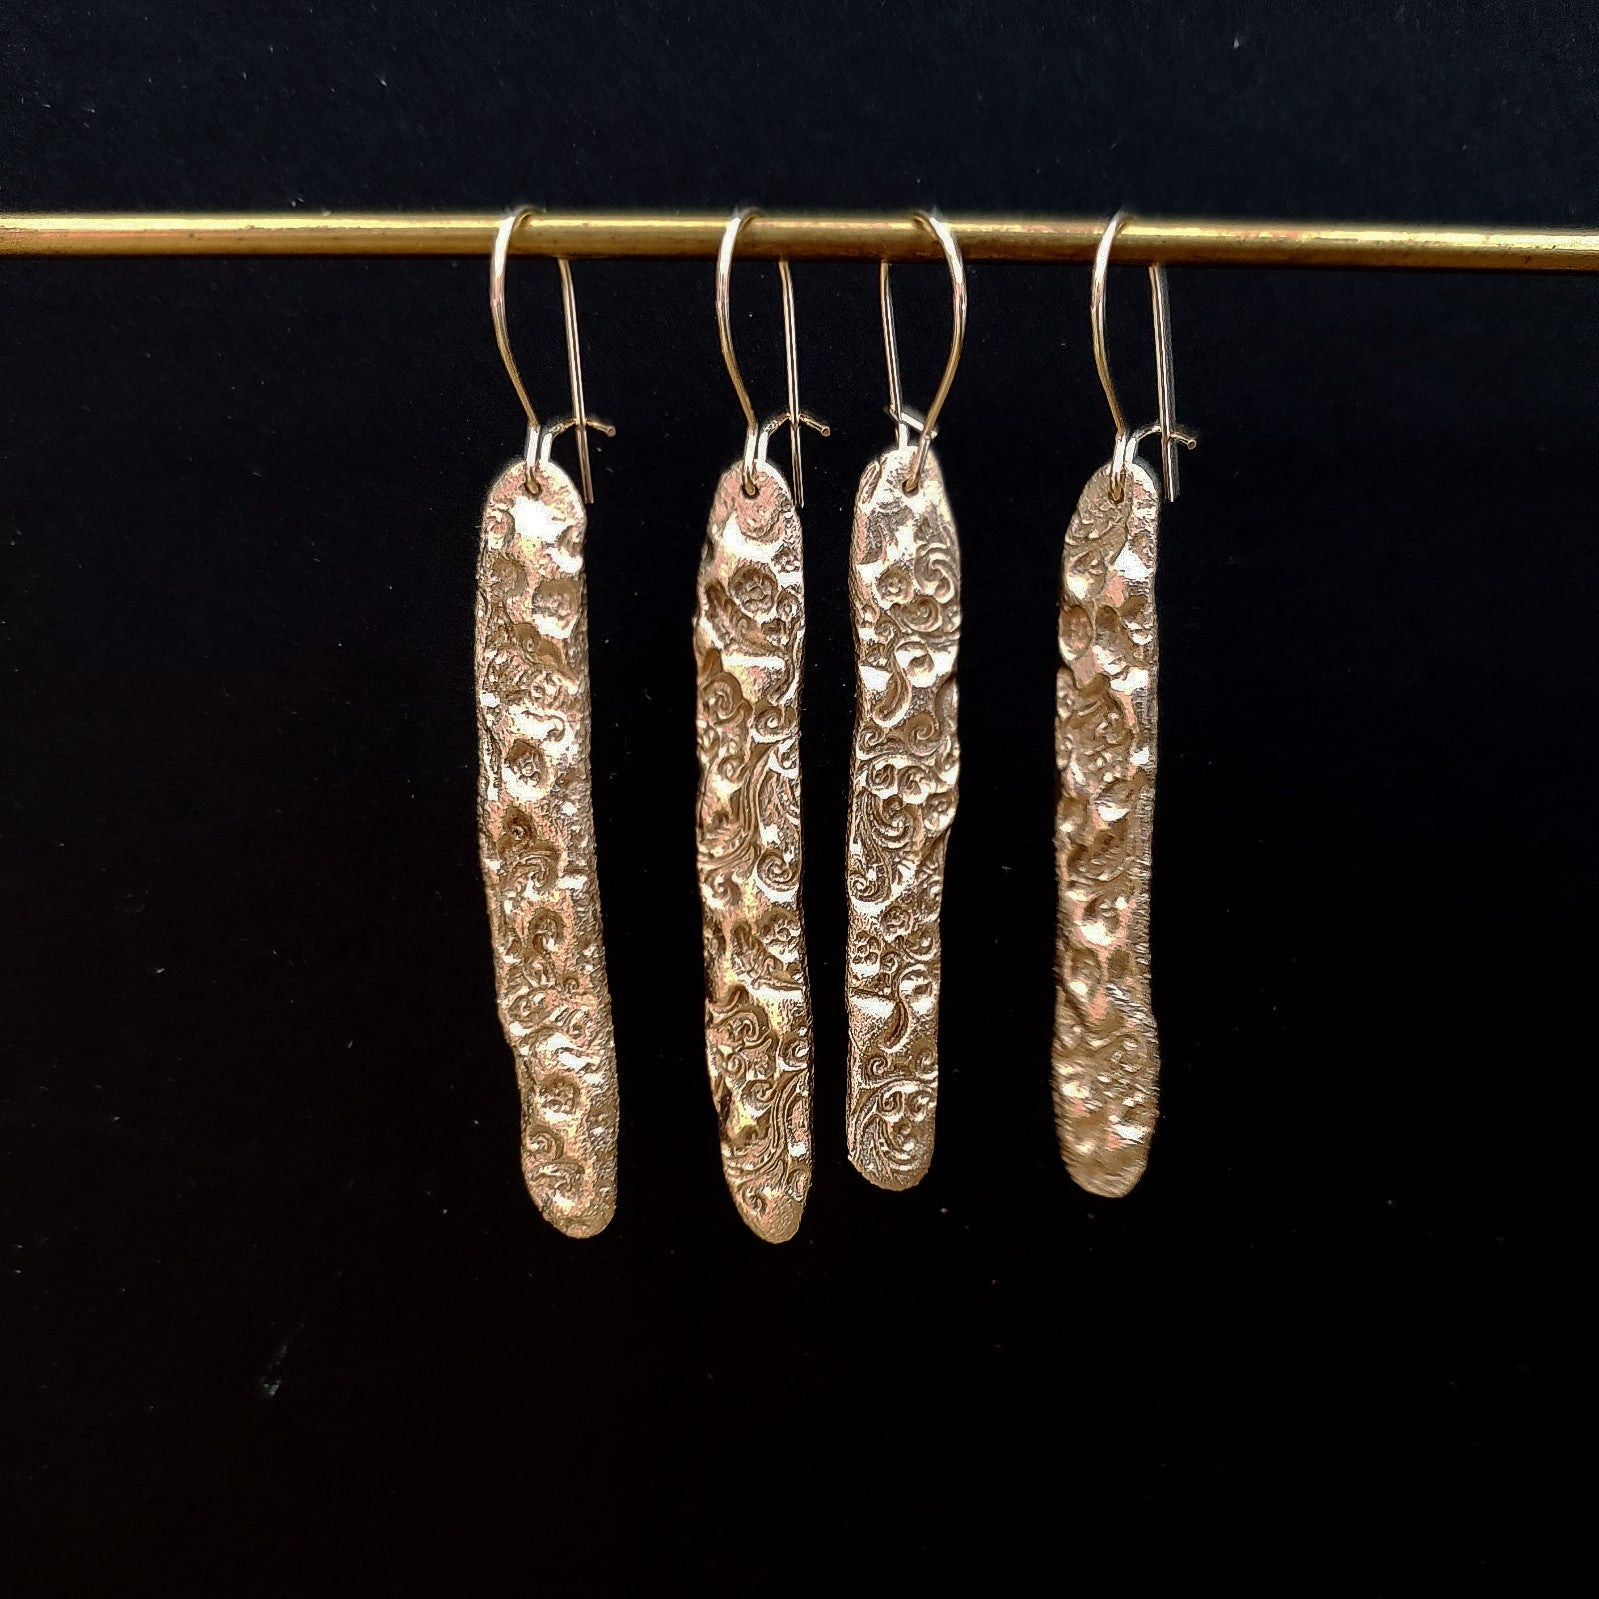 Bronze textured bar earrings